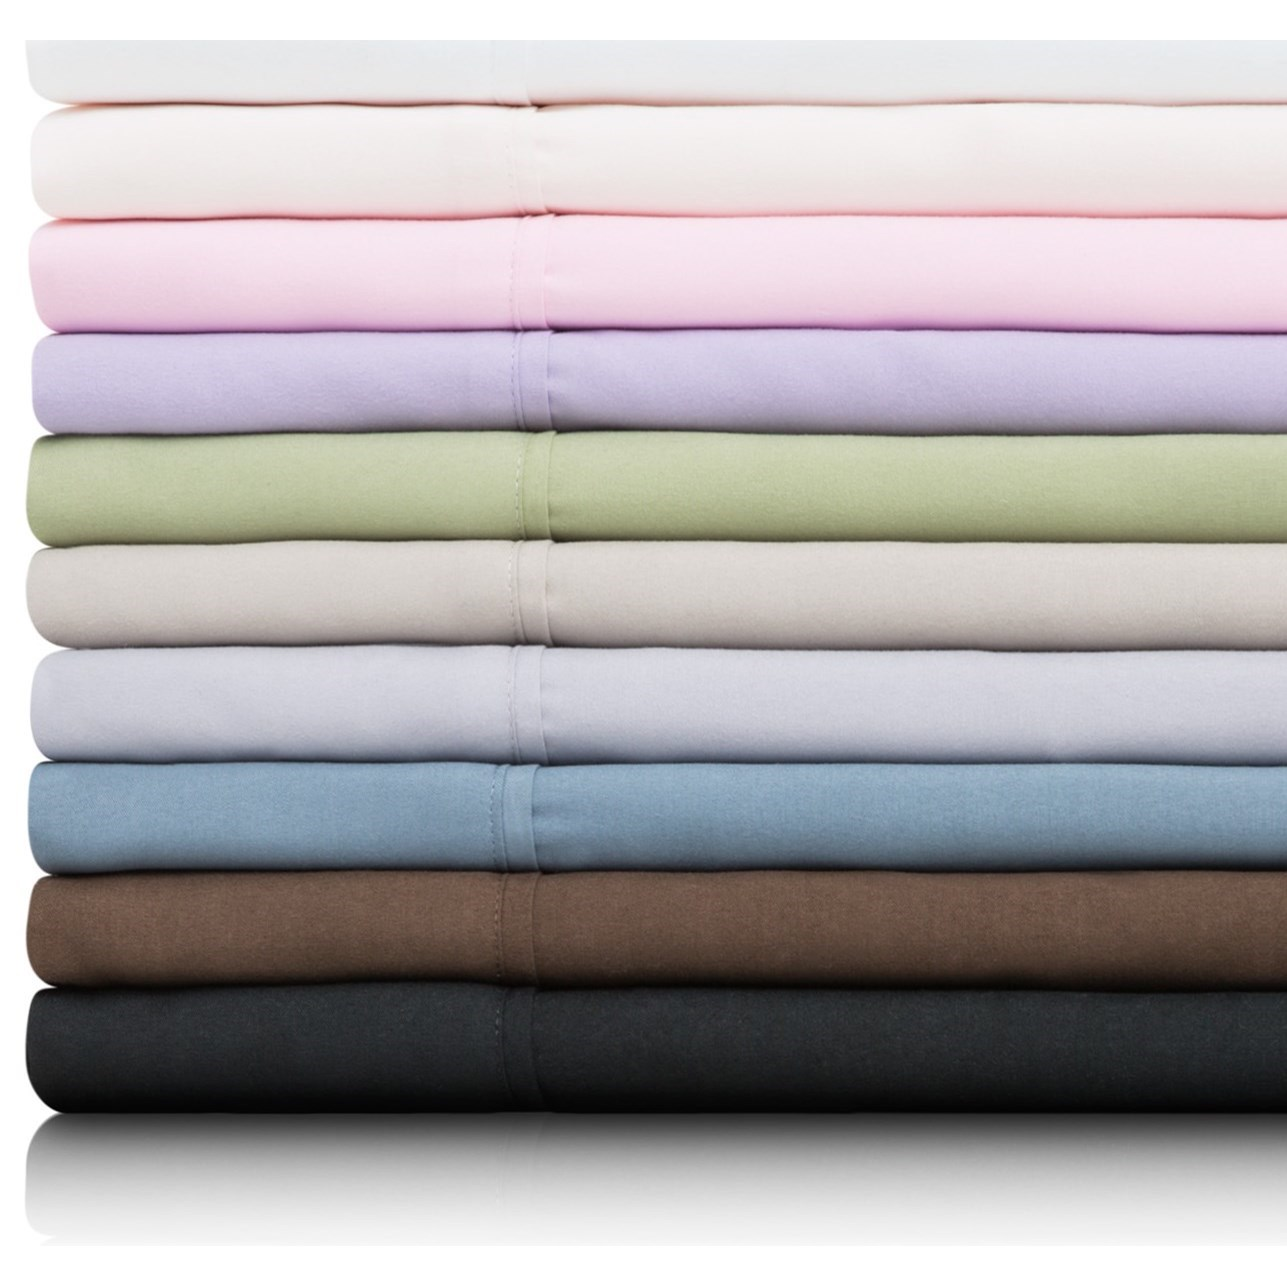 Malouf Brushed Microfiber Twin Woven™ Brushed Microfiber Sheet Set - Item Number: MA90TTWHMS